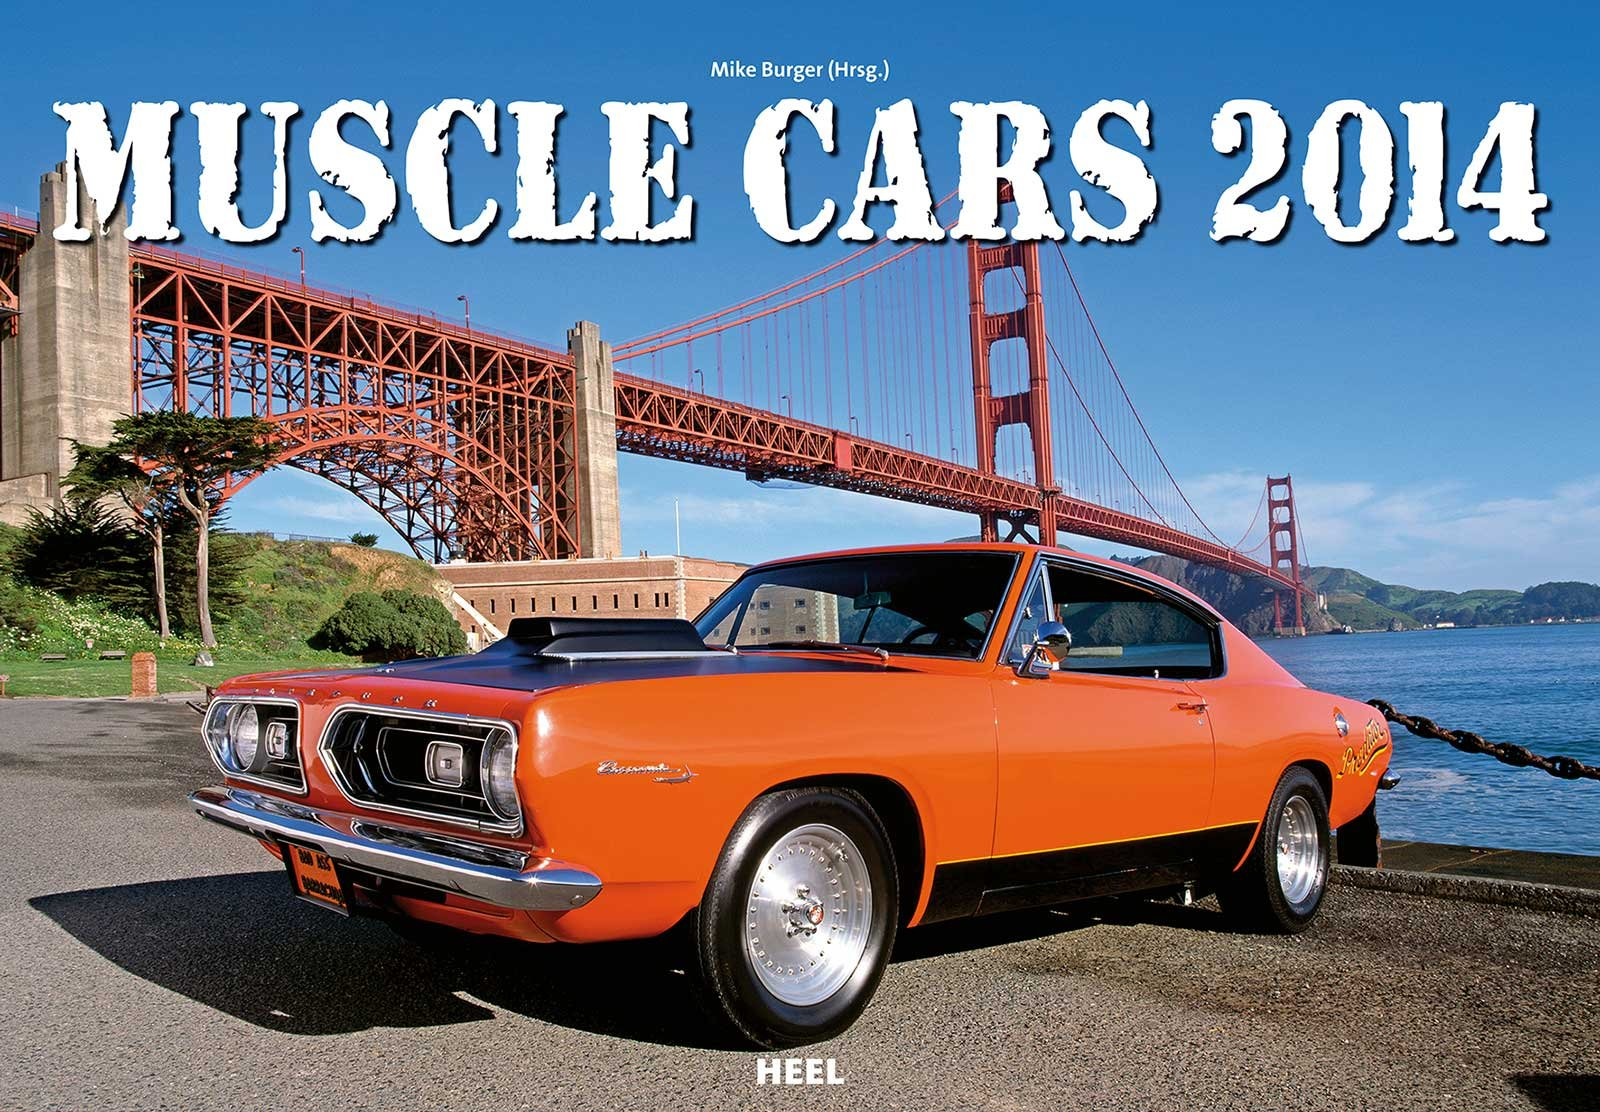 Muscle Cars 2014